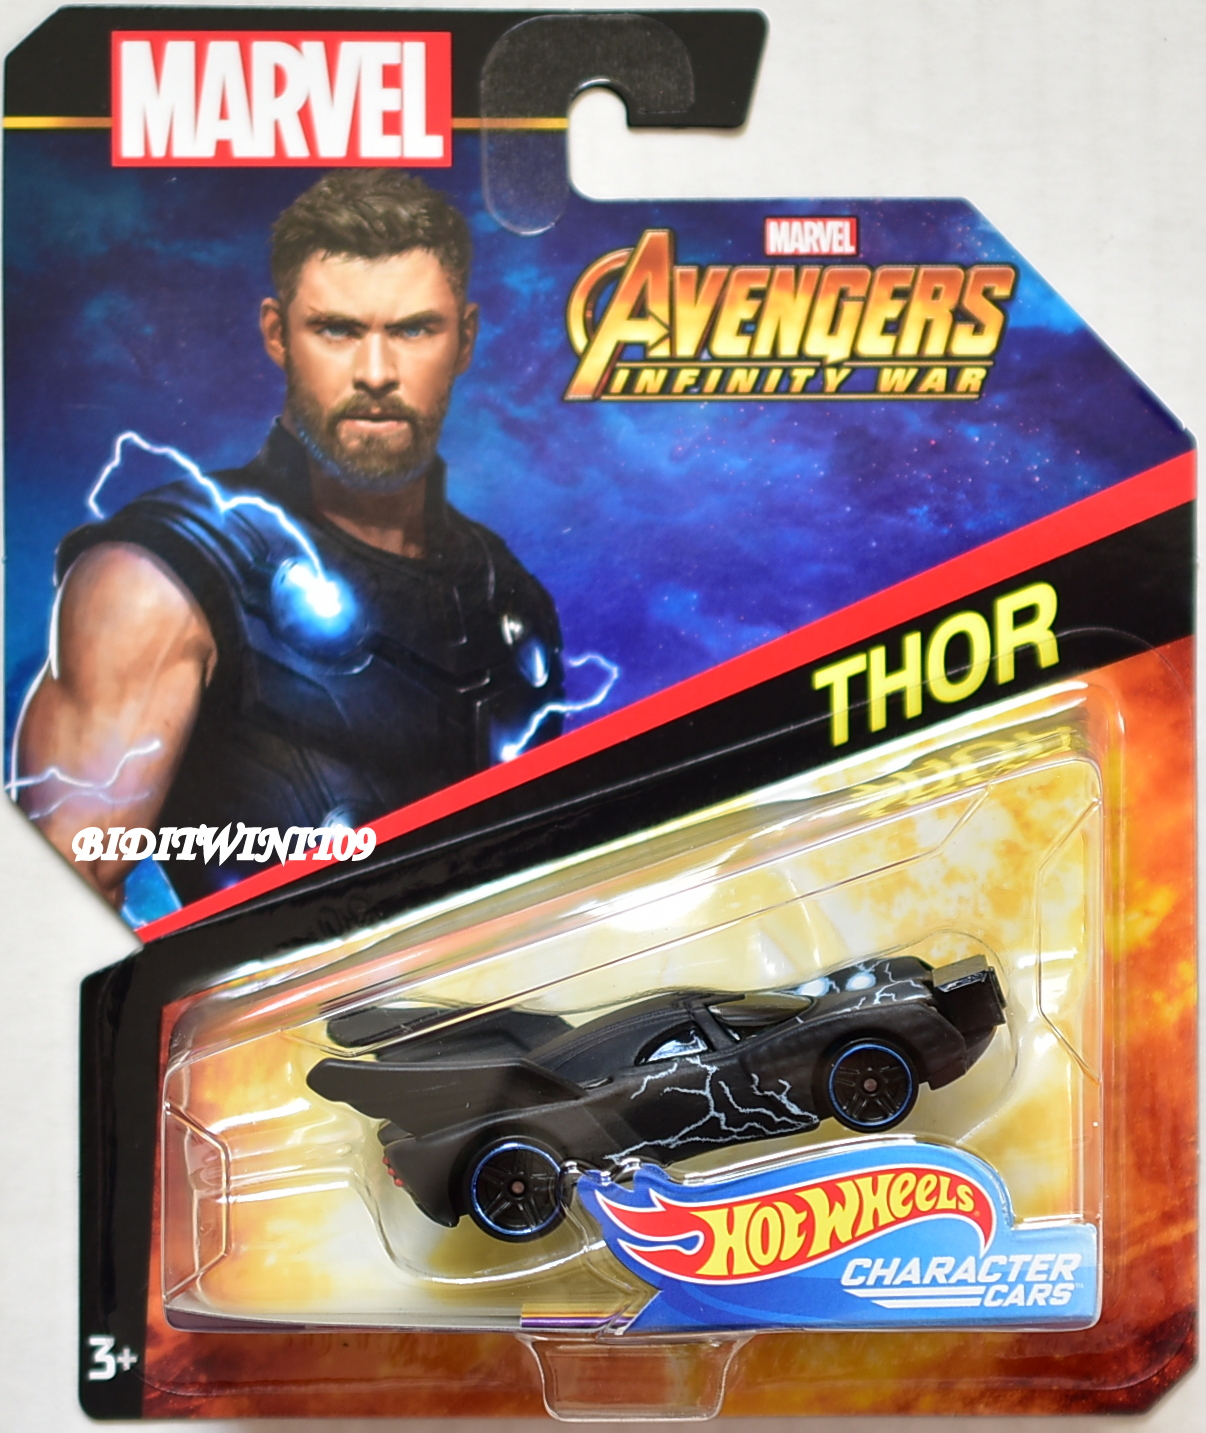 HOT WHEELS MARVEL AVANGERS INFINITY WAR THOR CHARACTER CARS